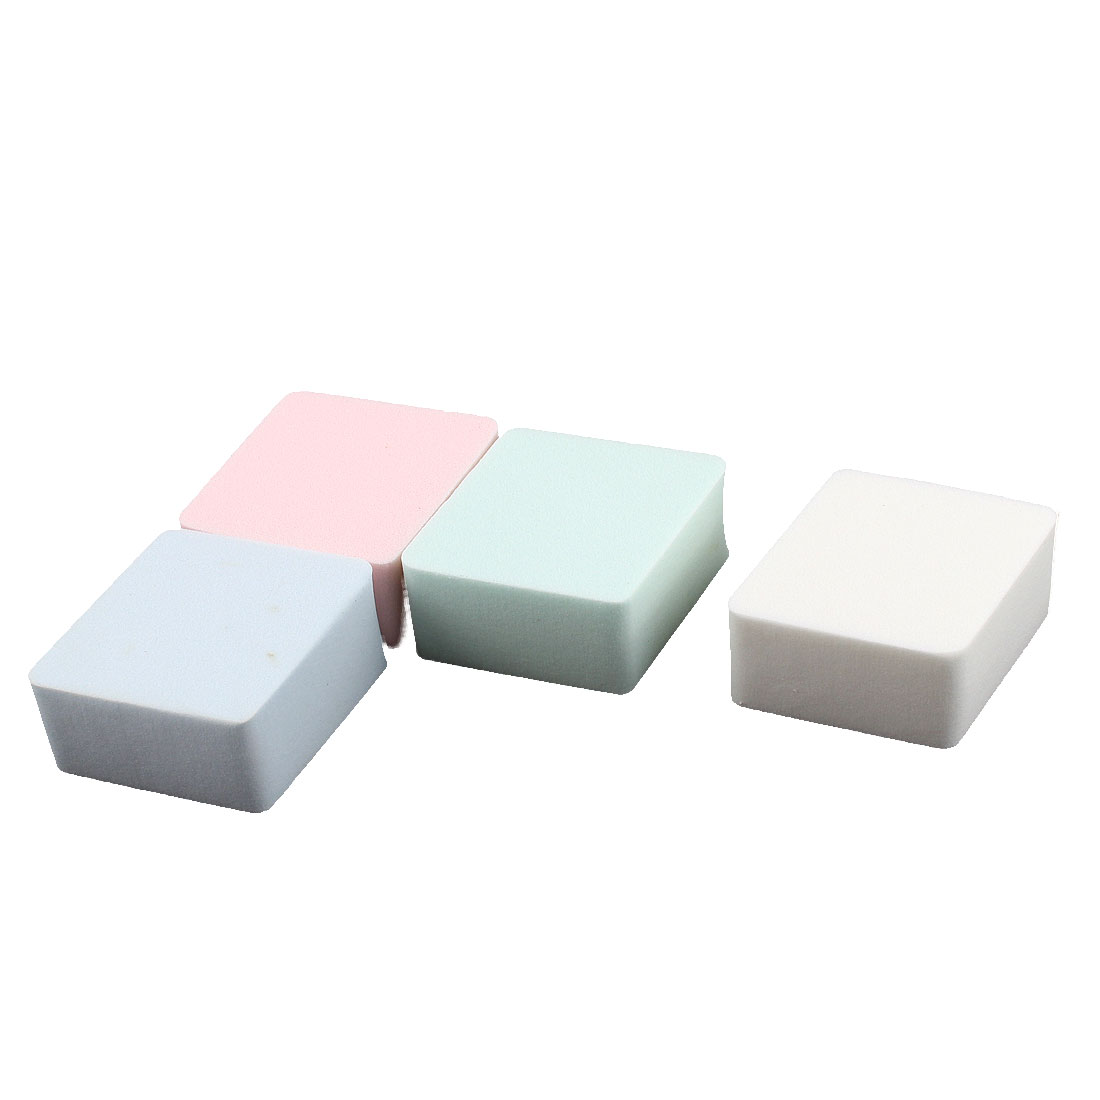 Rhombus Design Face Cleansing Washing Sponge Cleaner Cosmetic Powder Puff 4pcs